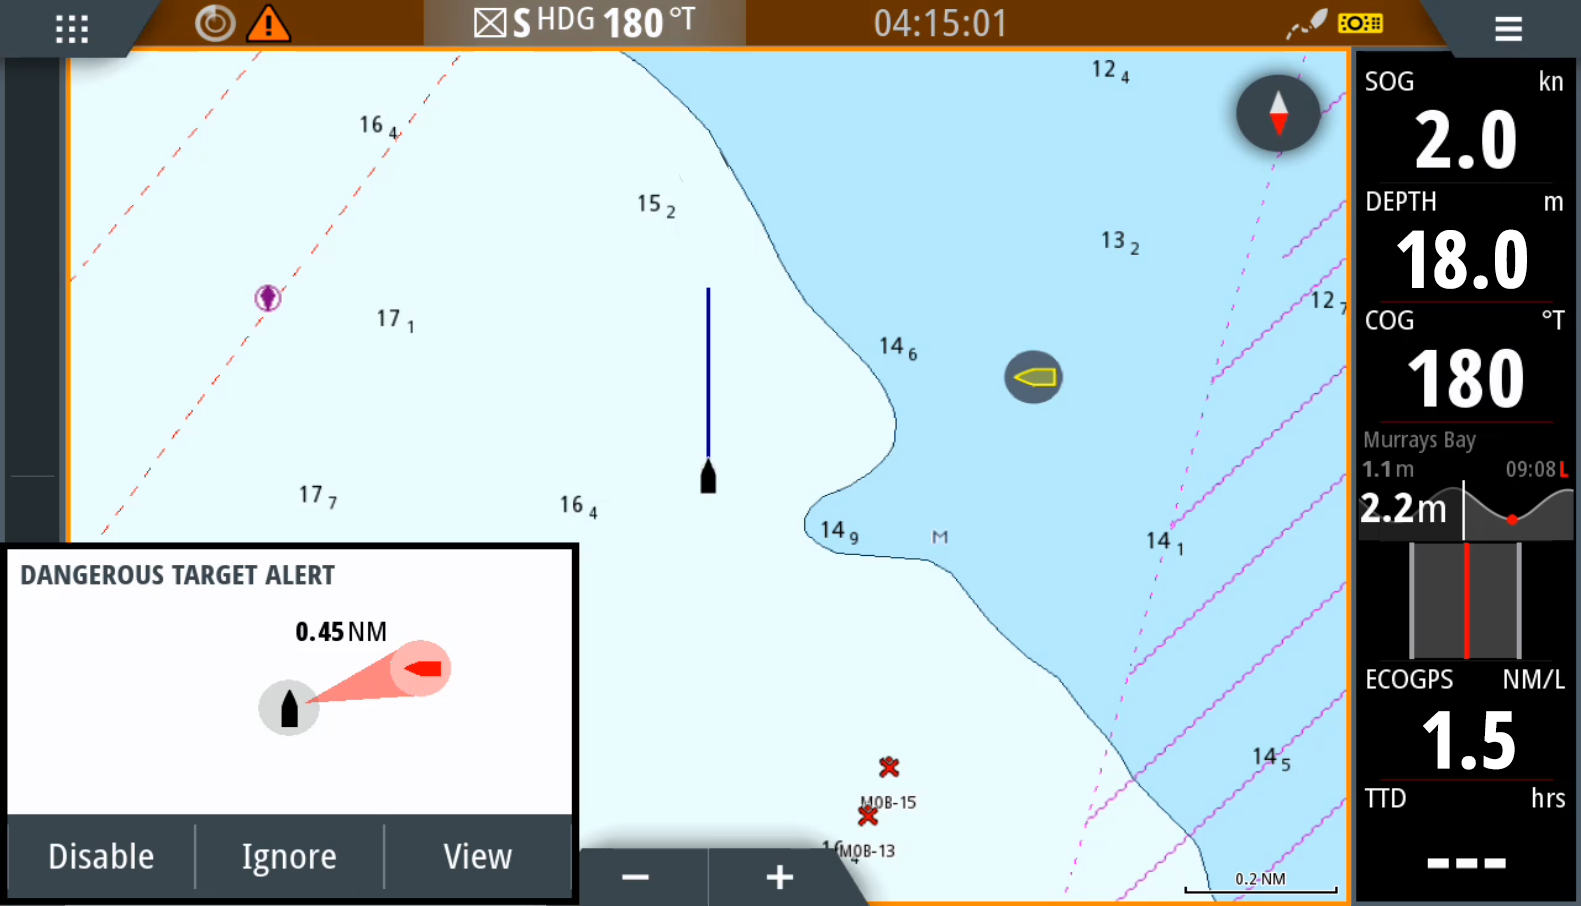 dangerous target alert feature onboard the latest Simrad system